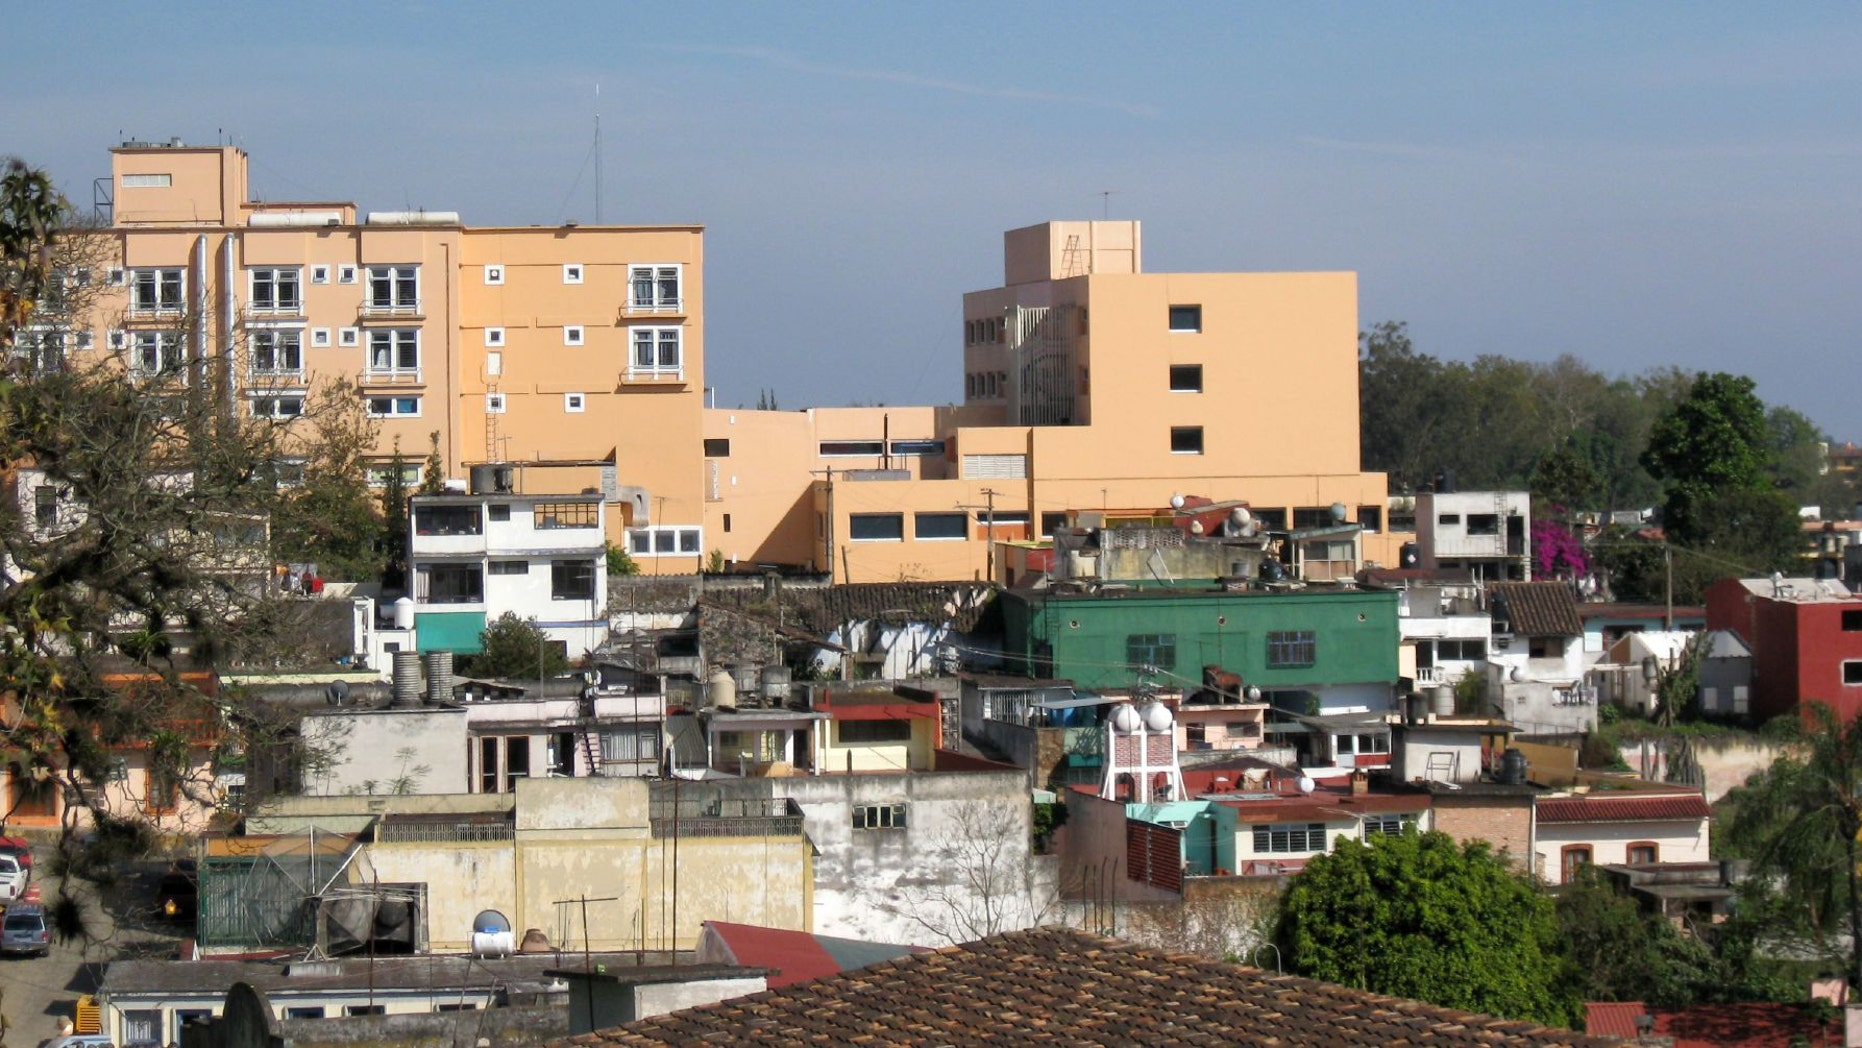 "The city of Xalapa, Veracruz. <a href=""http://www.flickr.com/photos/swigart/2292456670/sizes/o/in/photostream/"">(Flickr)</a>"